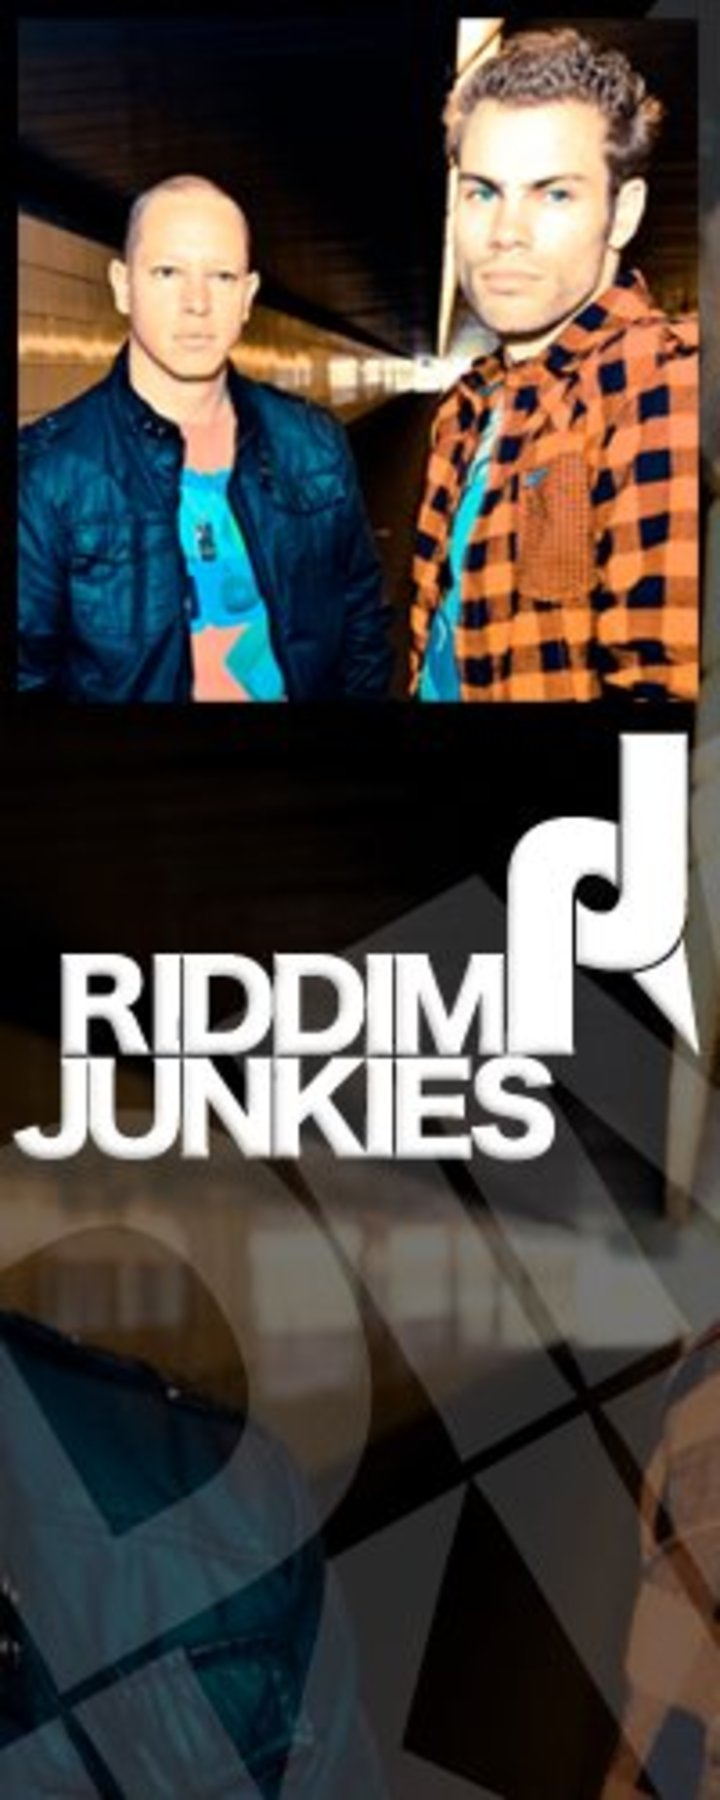 RiddimJunkies Tour Dates